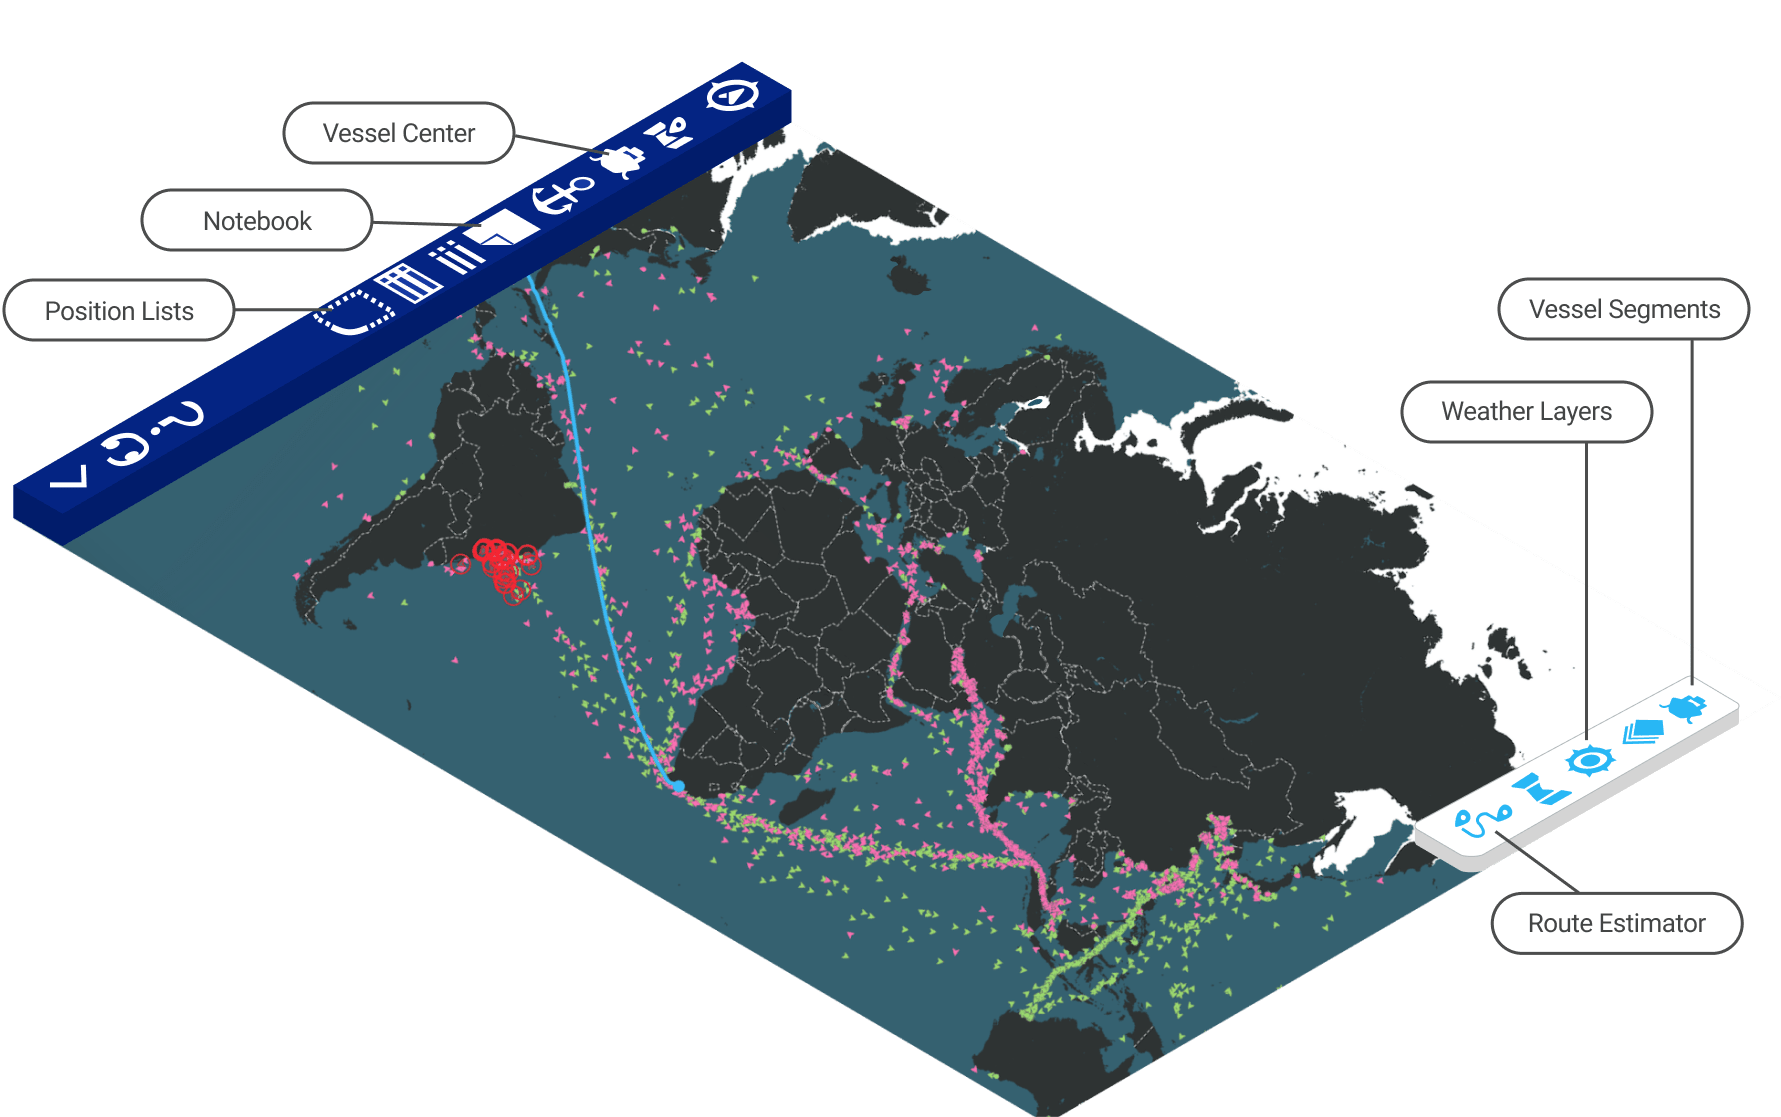 Illustration of the Maritime Optima app with vessel segments, route estimator and position lists in the map.